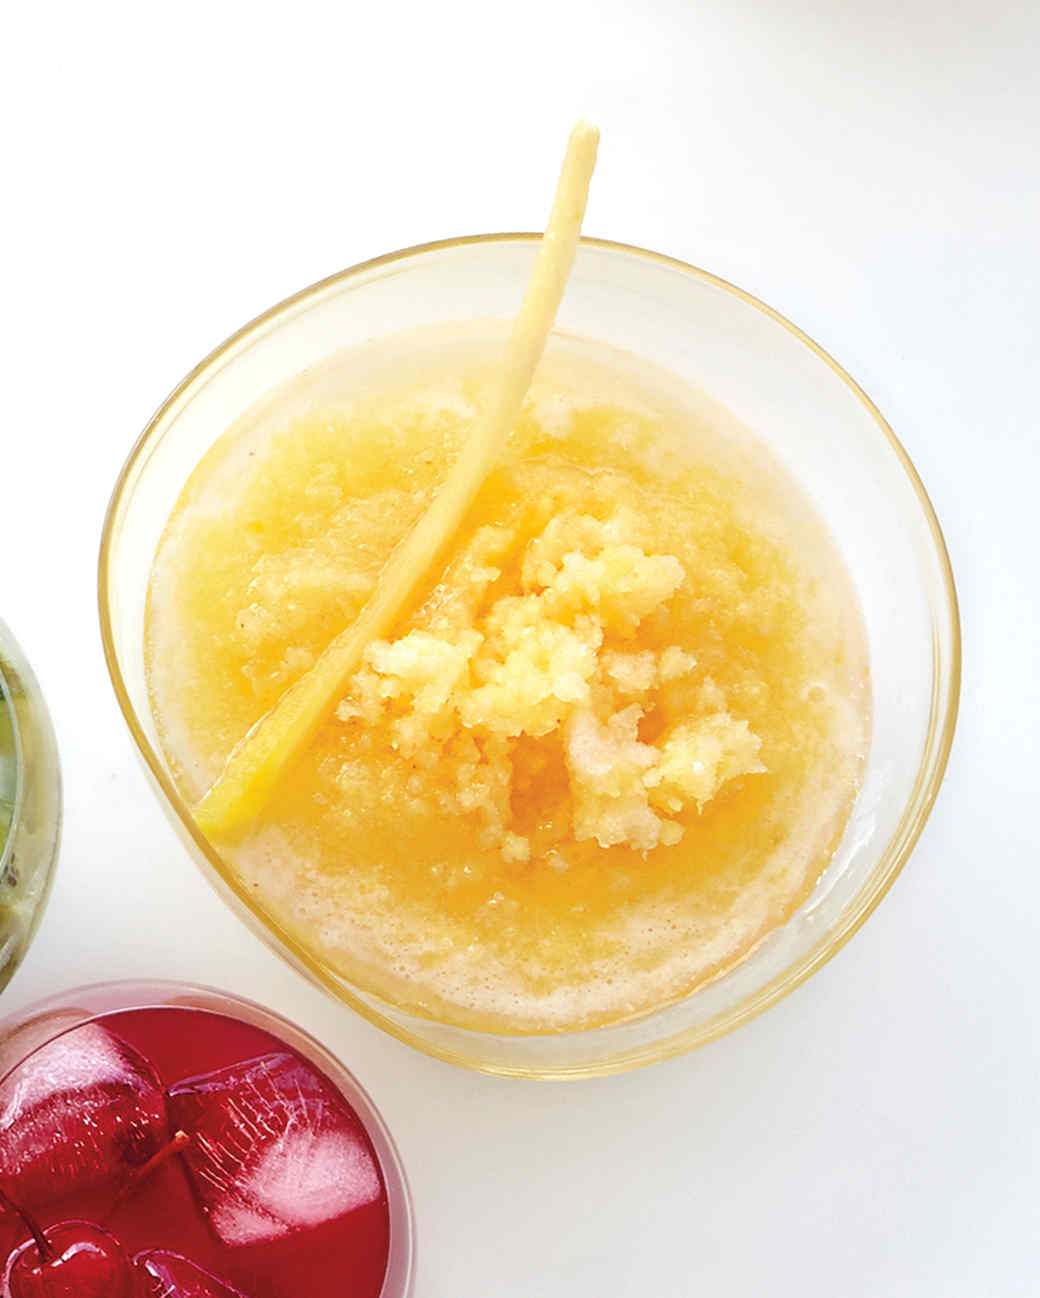 pineapple-granita-tropical-transformation-cocktails-spread-three-112-d112024r.jpg